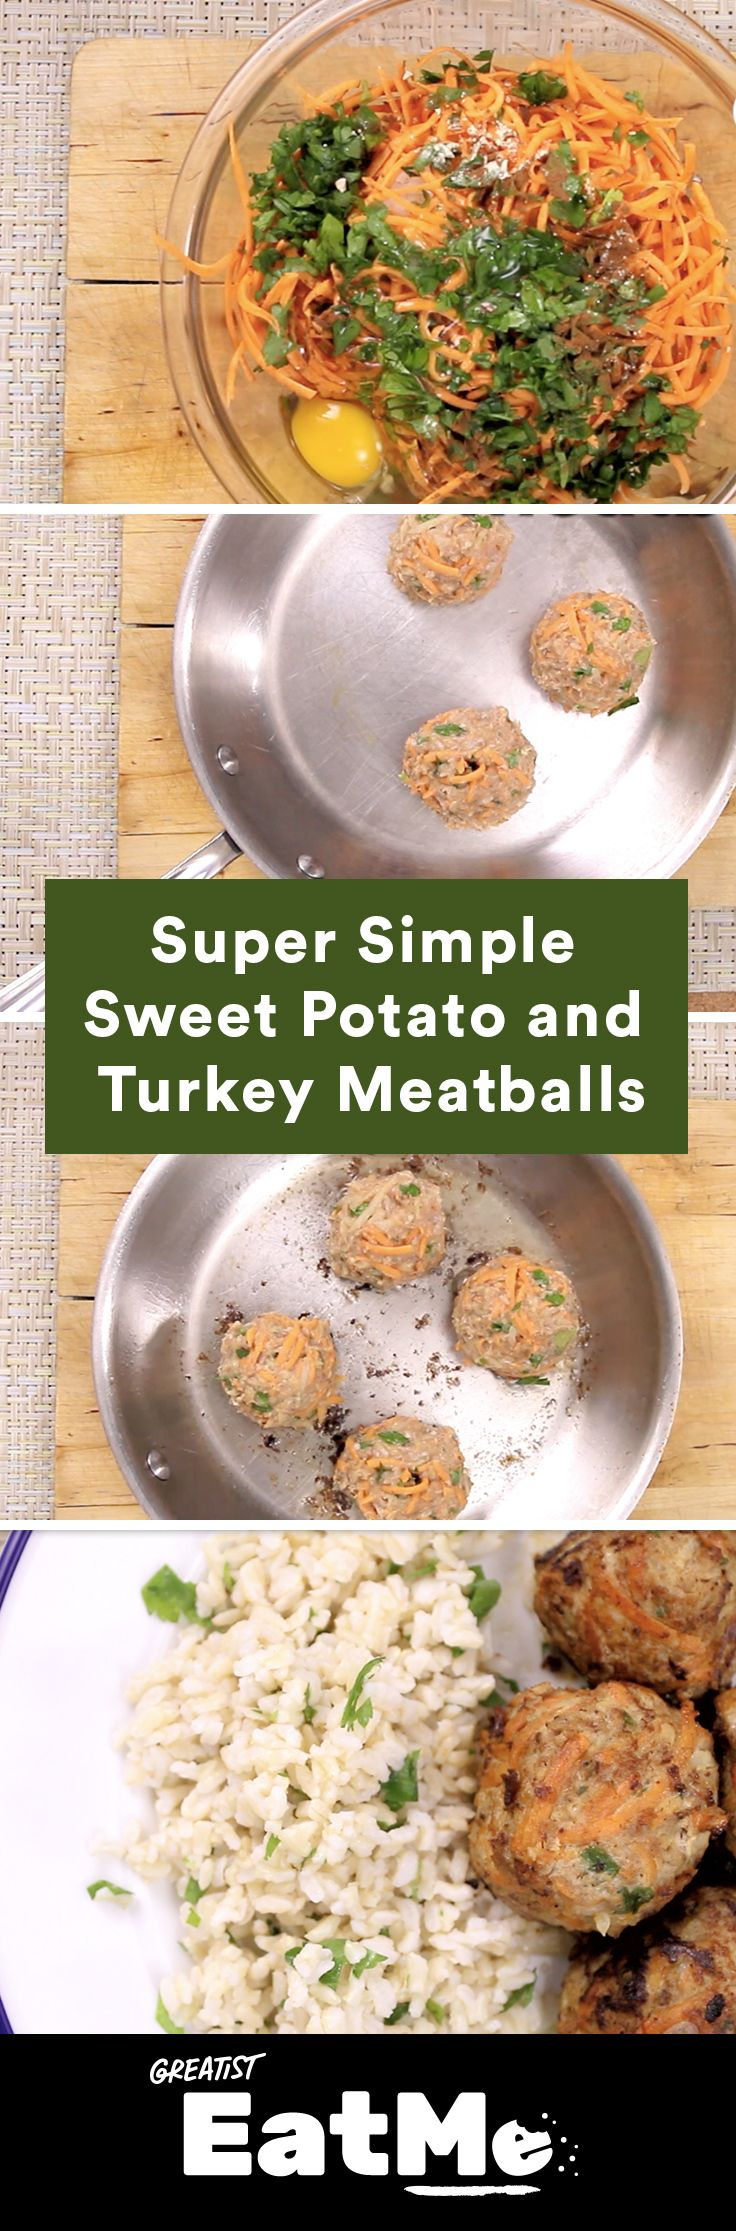 Because dinner shouldn't be tricky. #healthy #turkeymeatball #sweetpotato http://greatist.com/eat/turkey-meatballs-sweet-potato-recipe-video